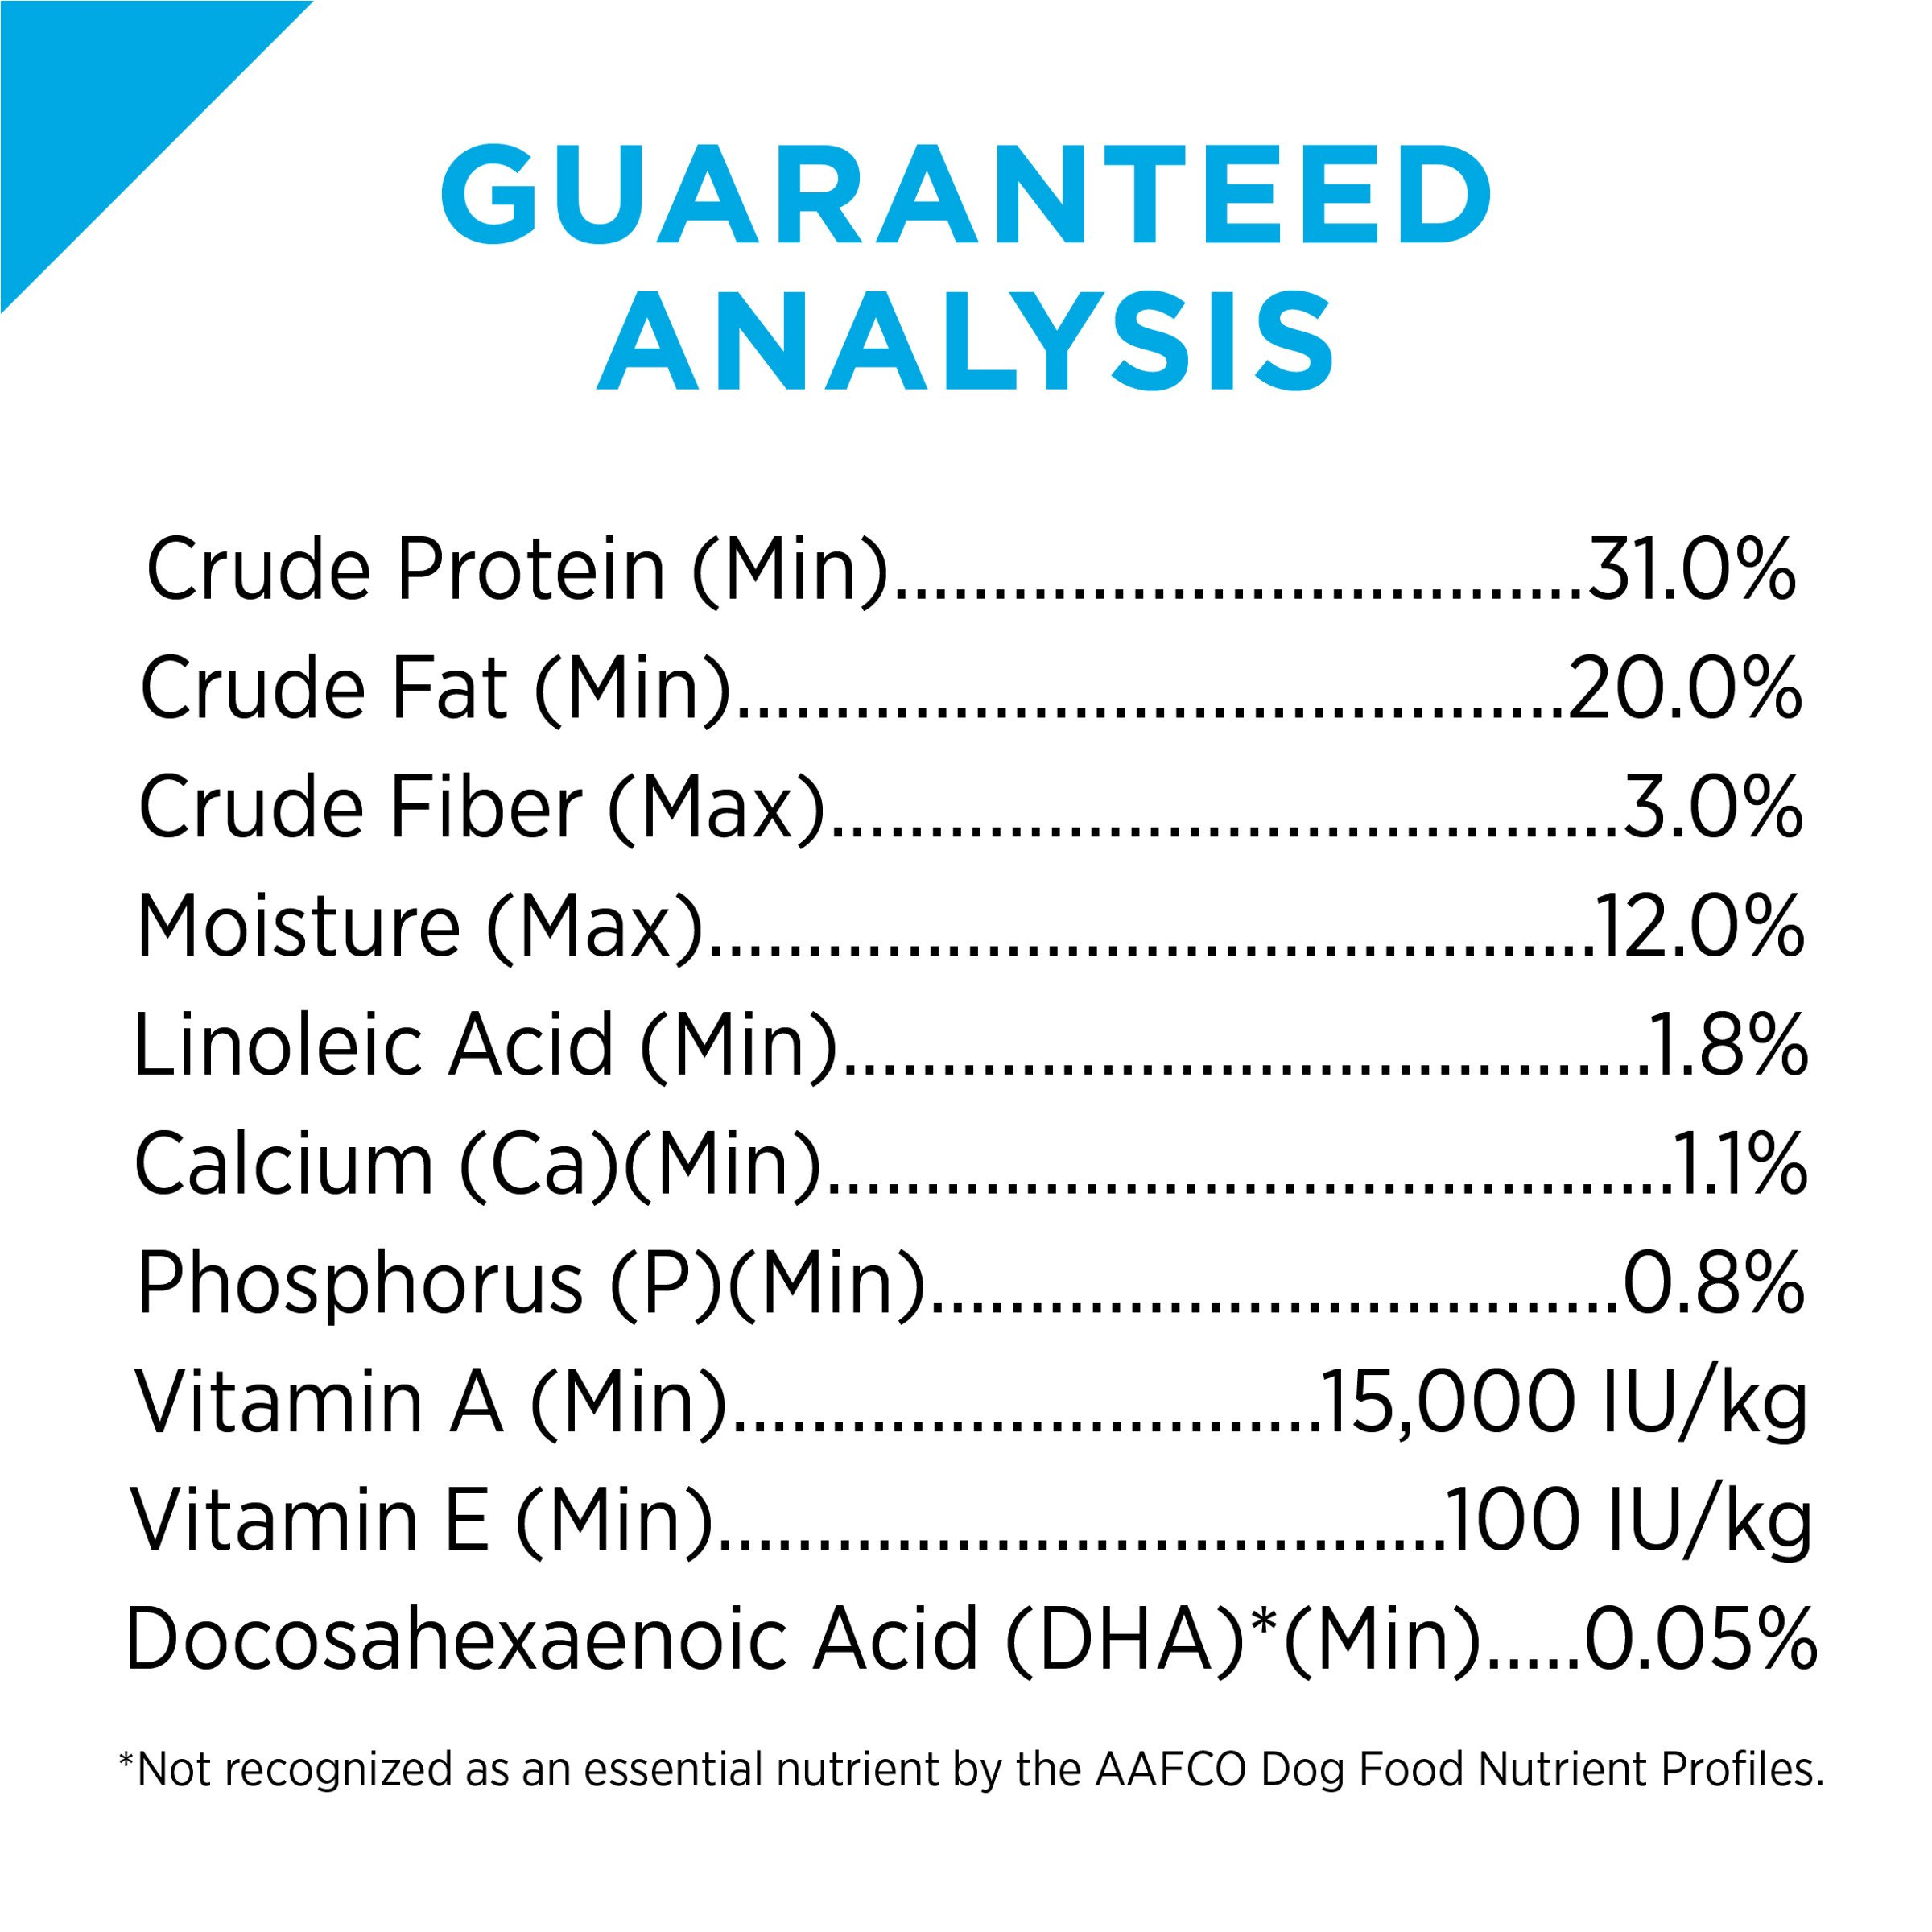 Purina Pro Plan FOCUS Puppy Toy Breed Formula Dry Dog Food - (1) 5 lb. Bag by Purina Pro Plan (Image #11)